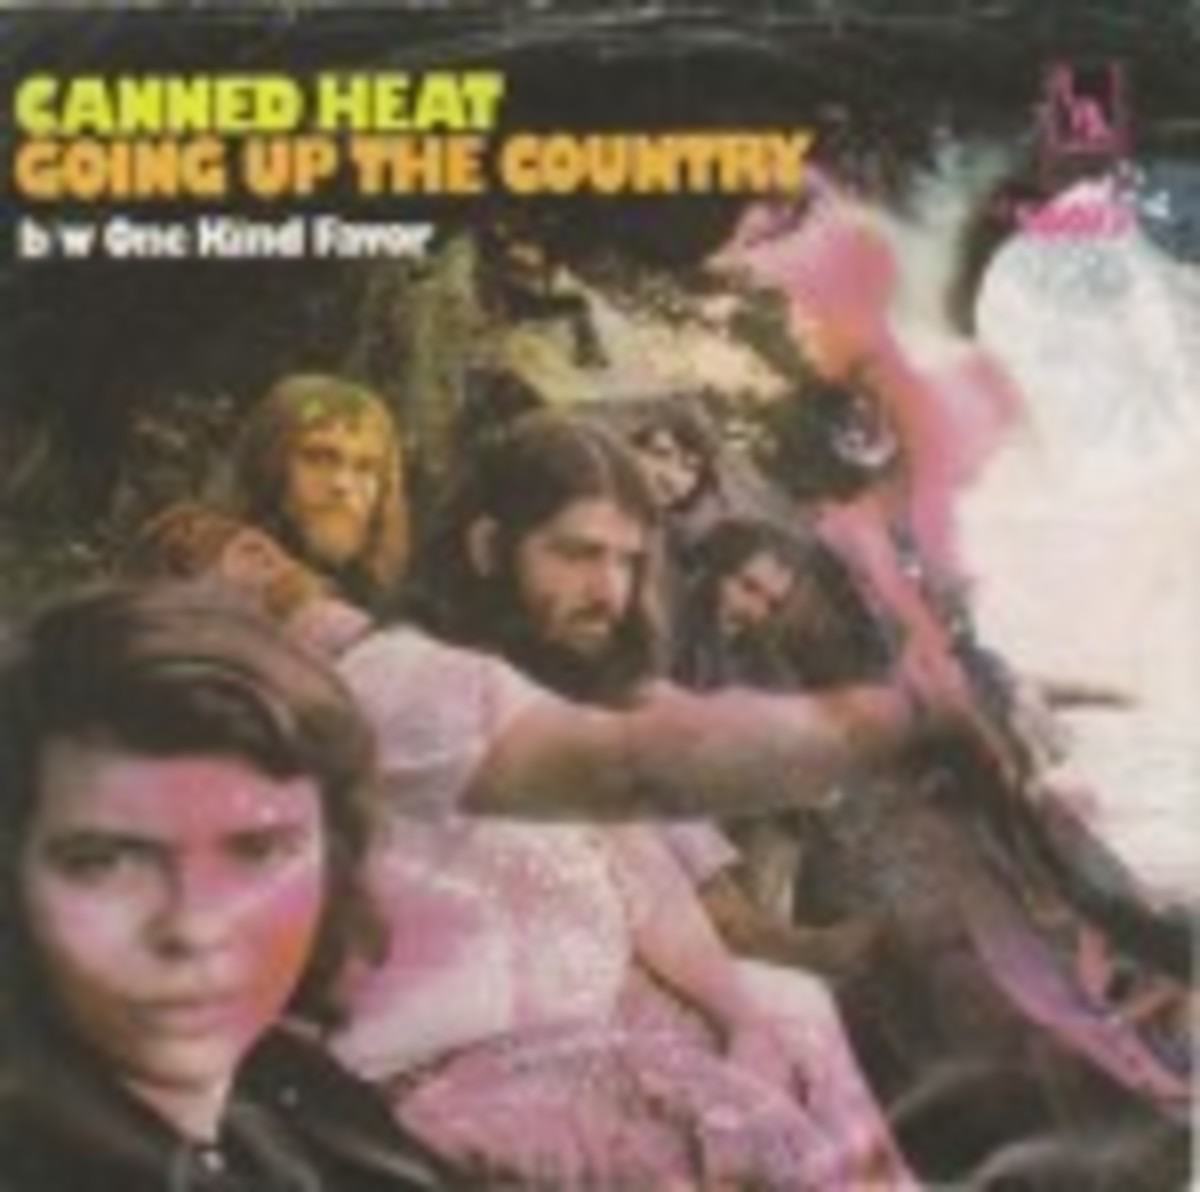 Canned Heat Going Up In The Country picture sleeve